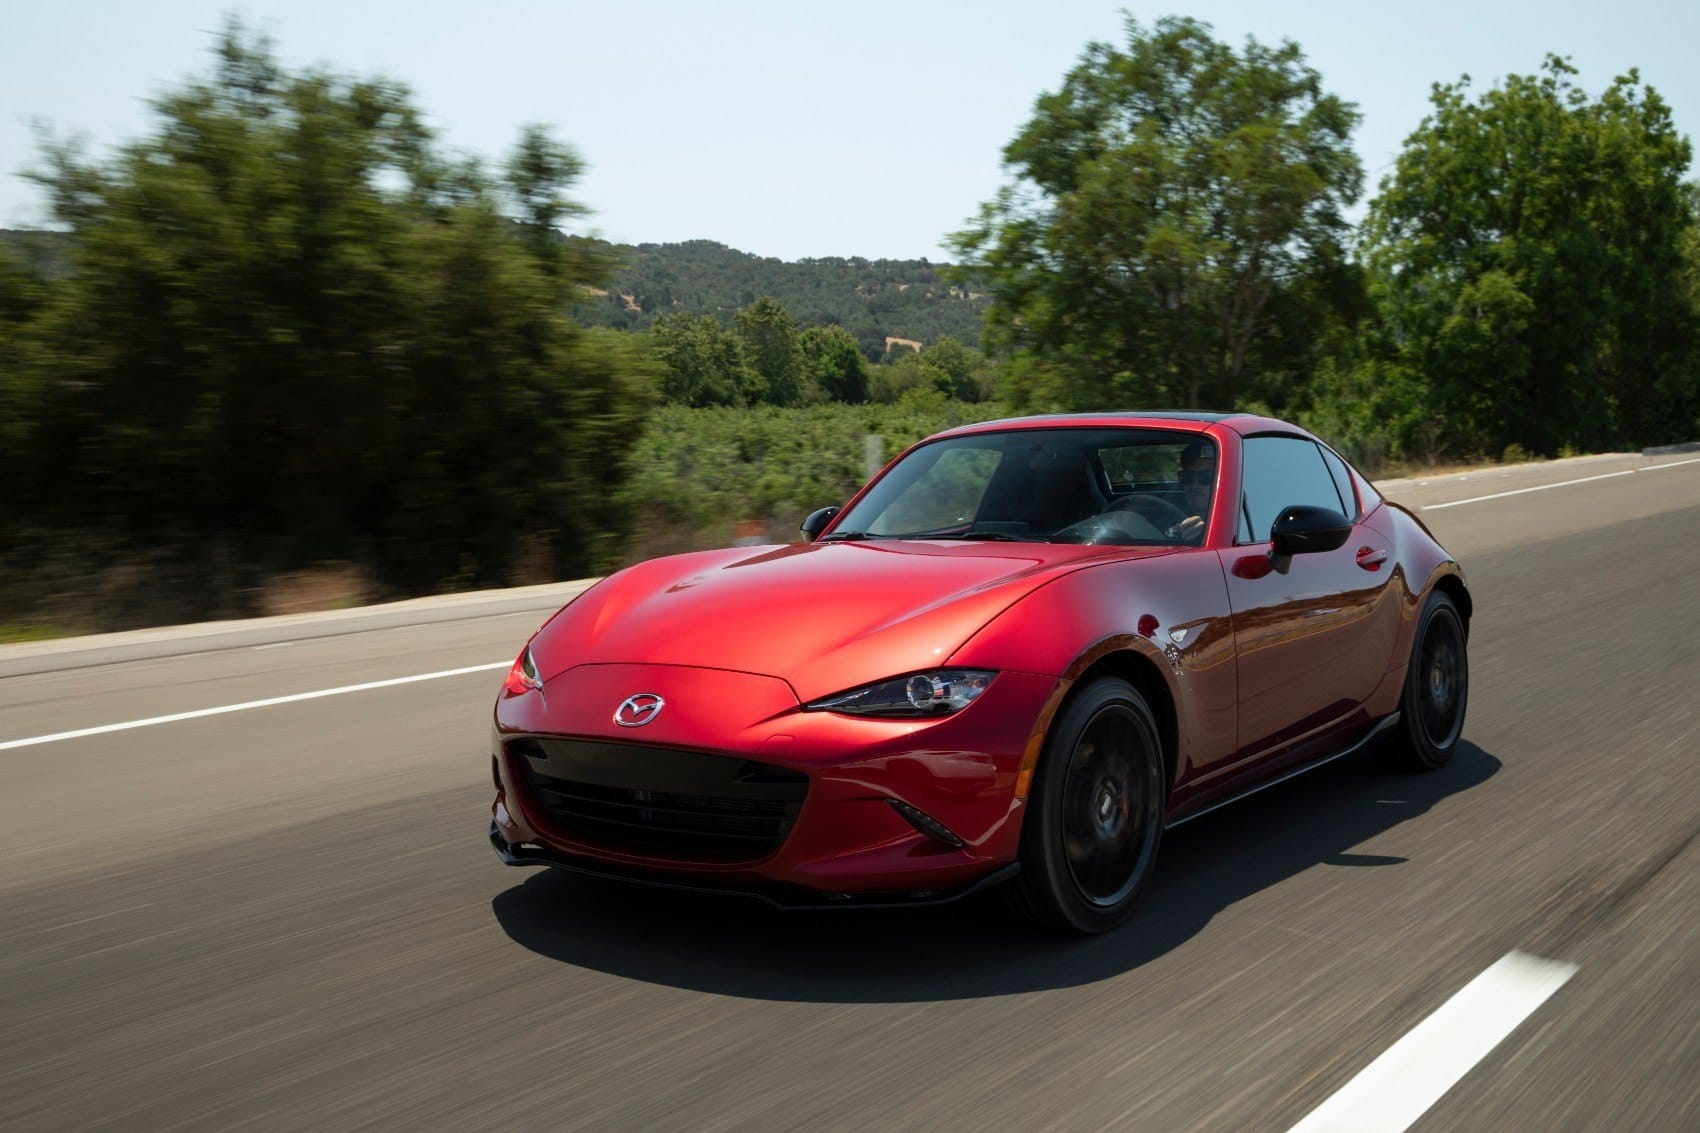 2019 Mazda MX-5 Miata RF Grand Touring Review: Fabulous & Fun